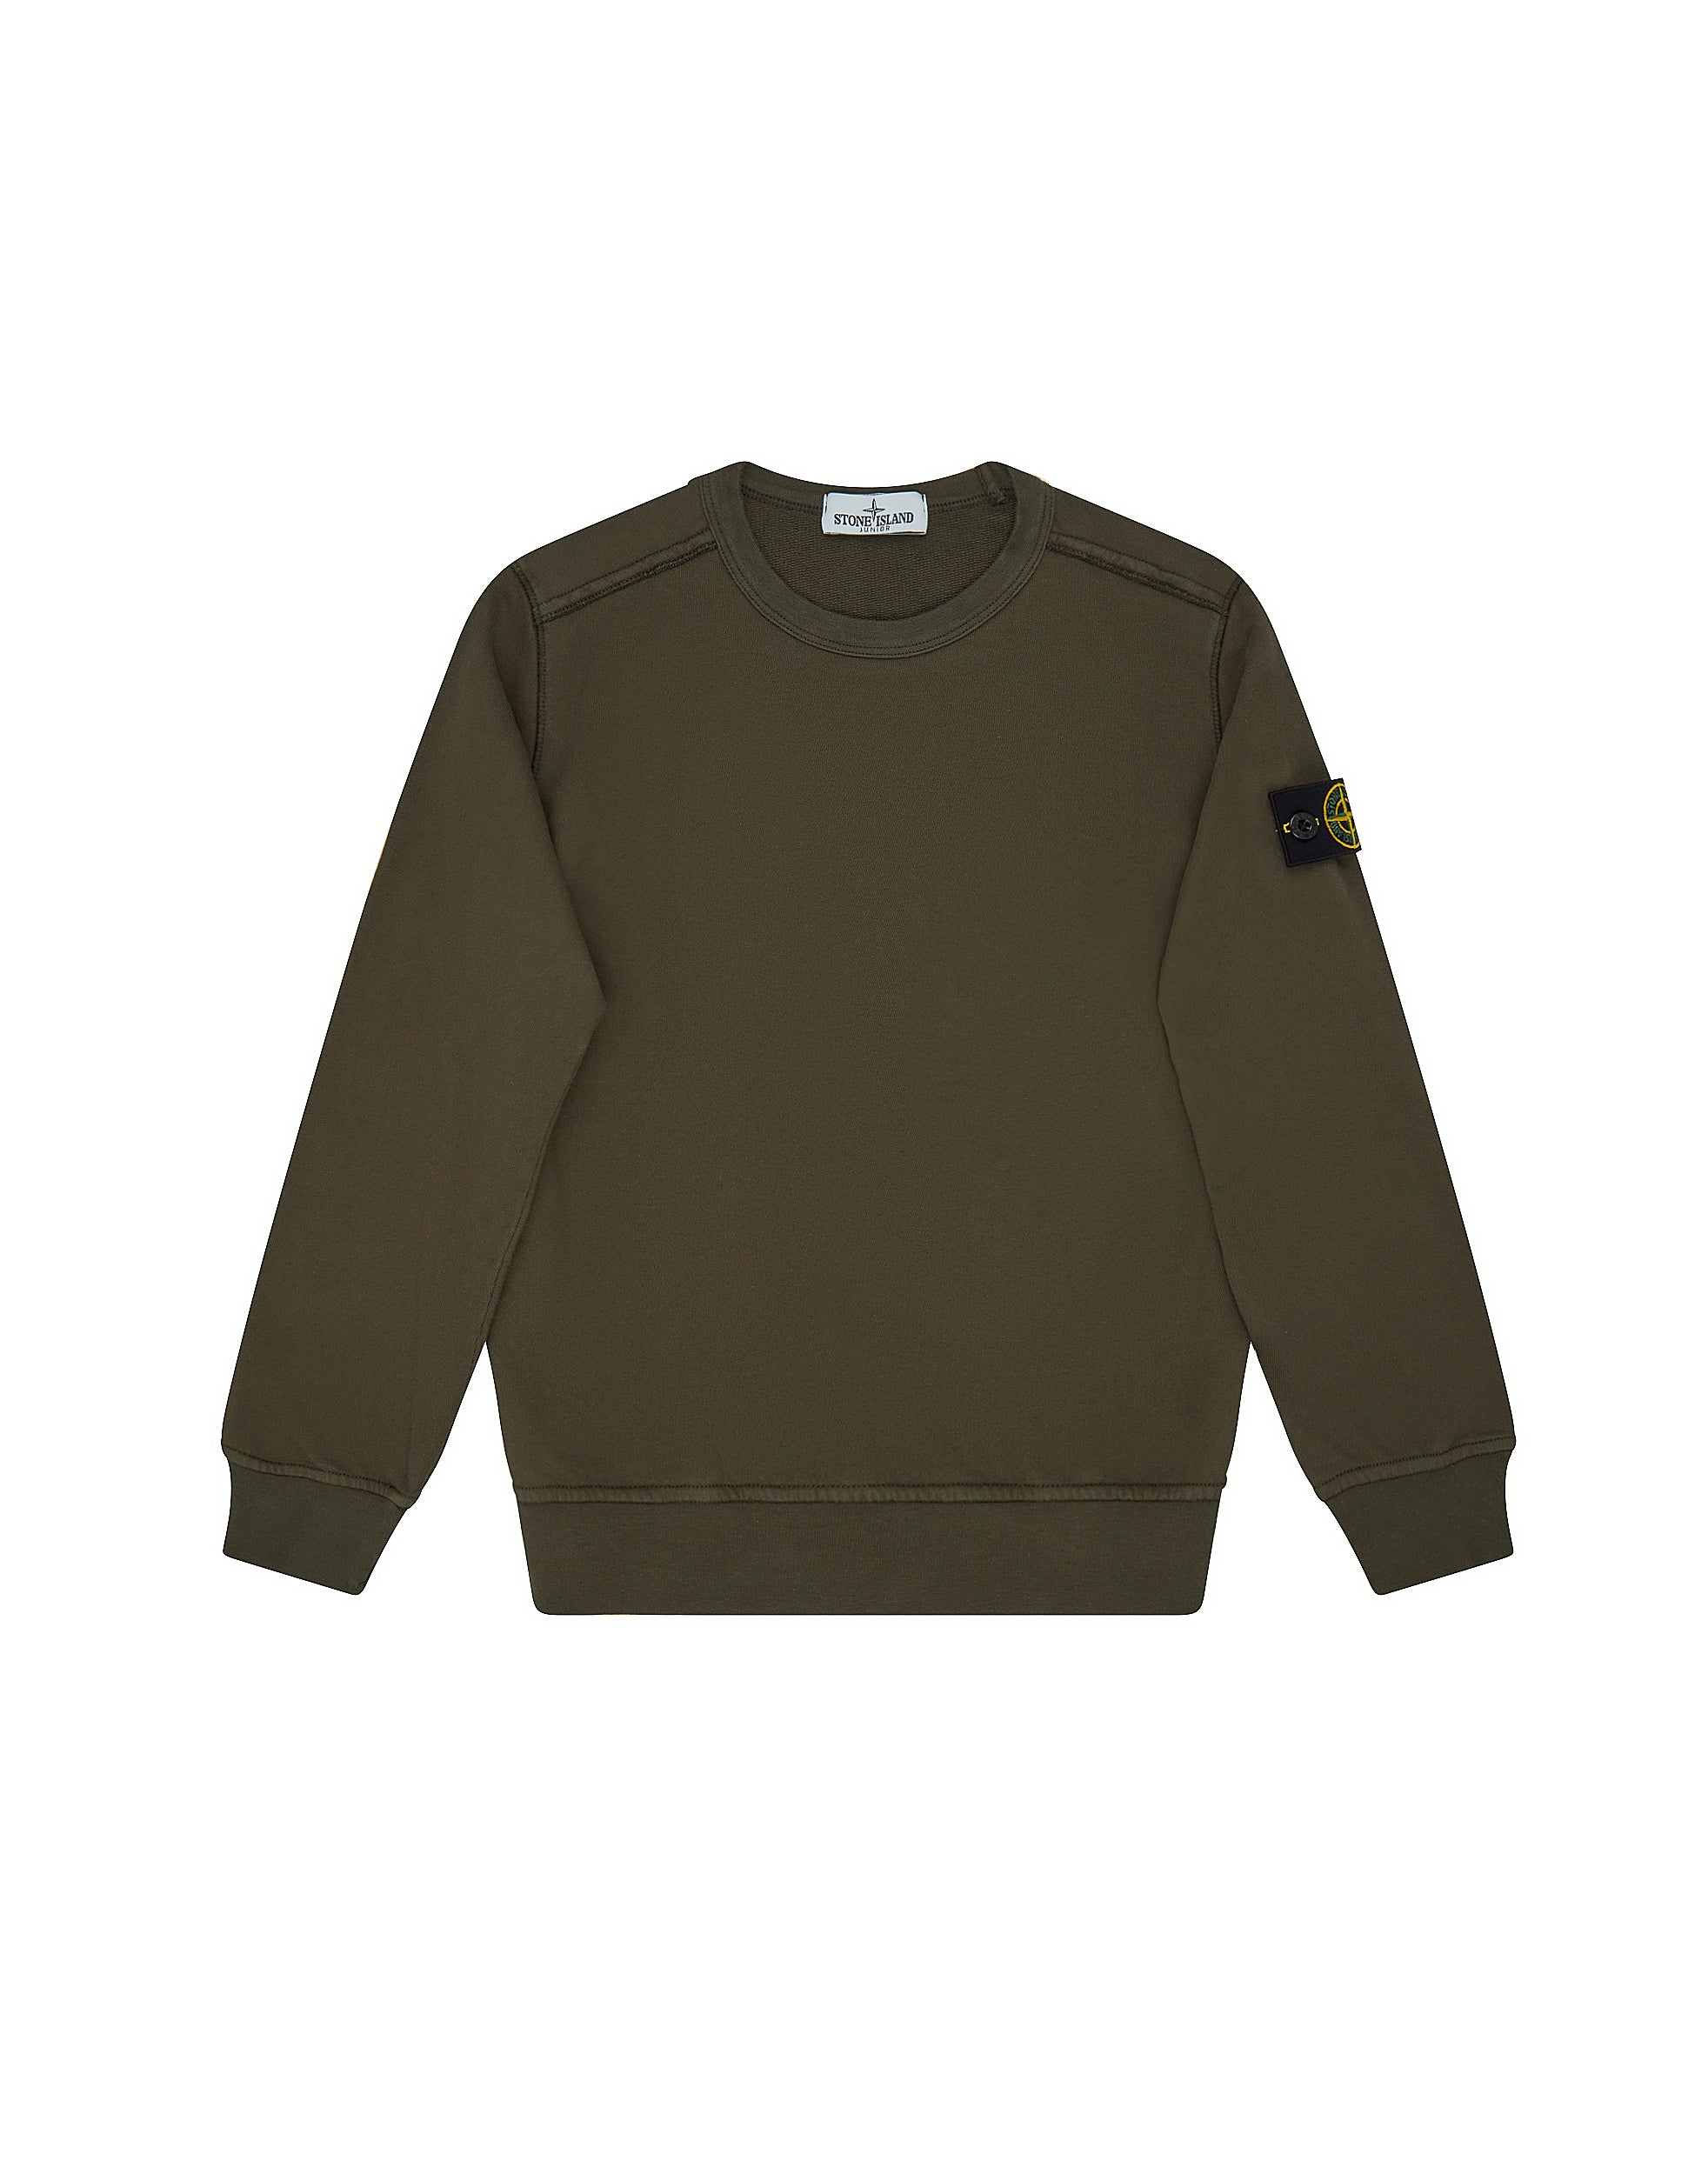 61840 Crew Neck Sweatshirt in Musk